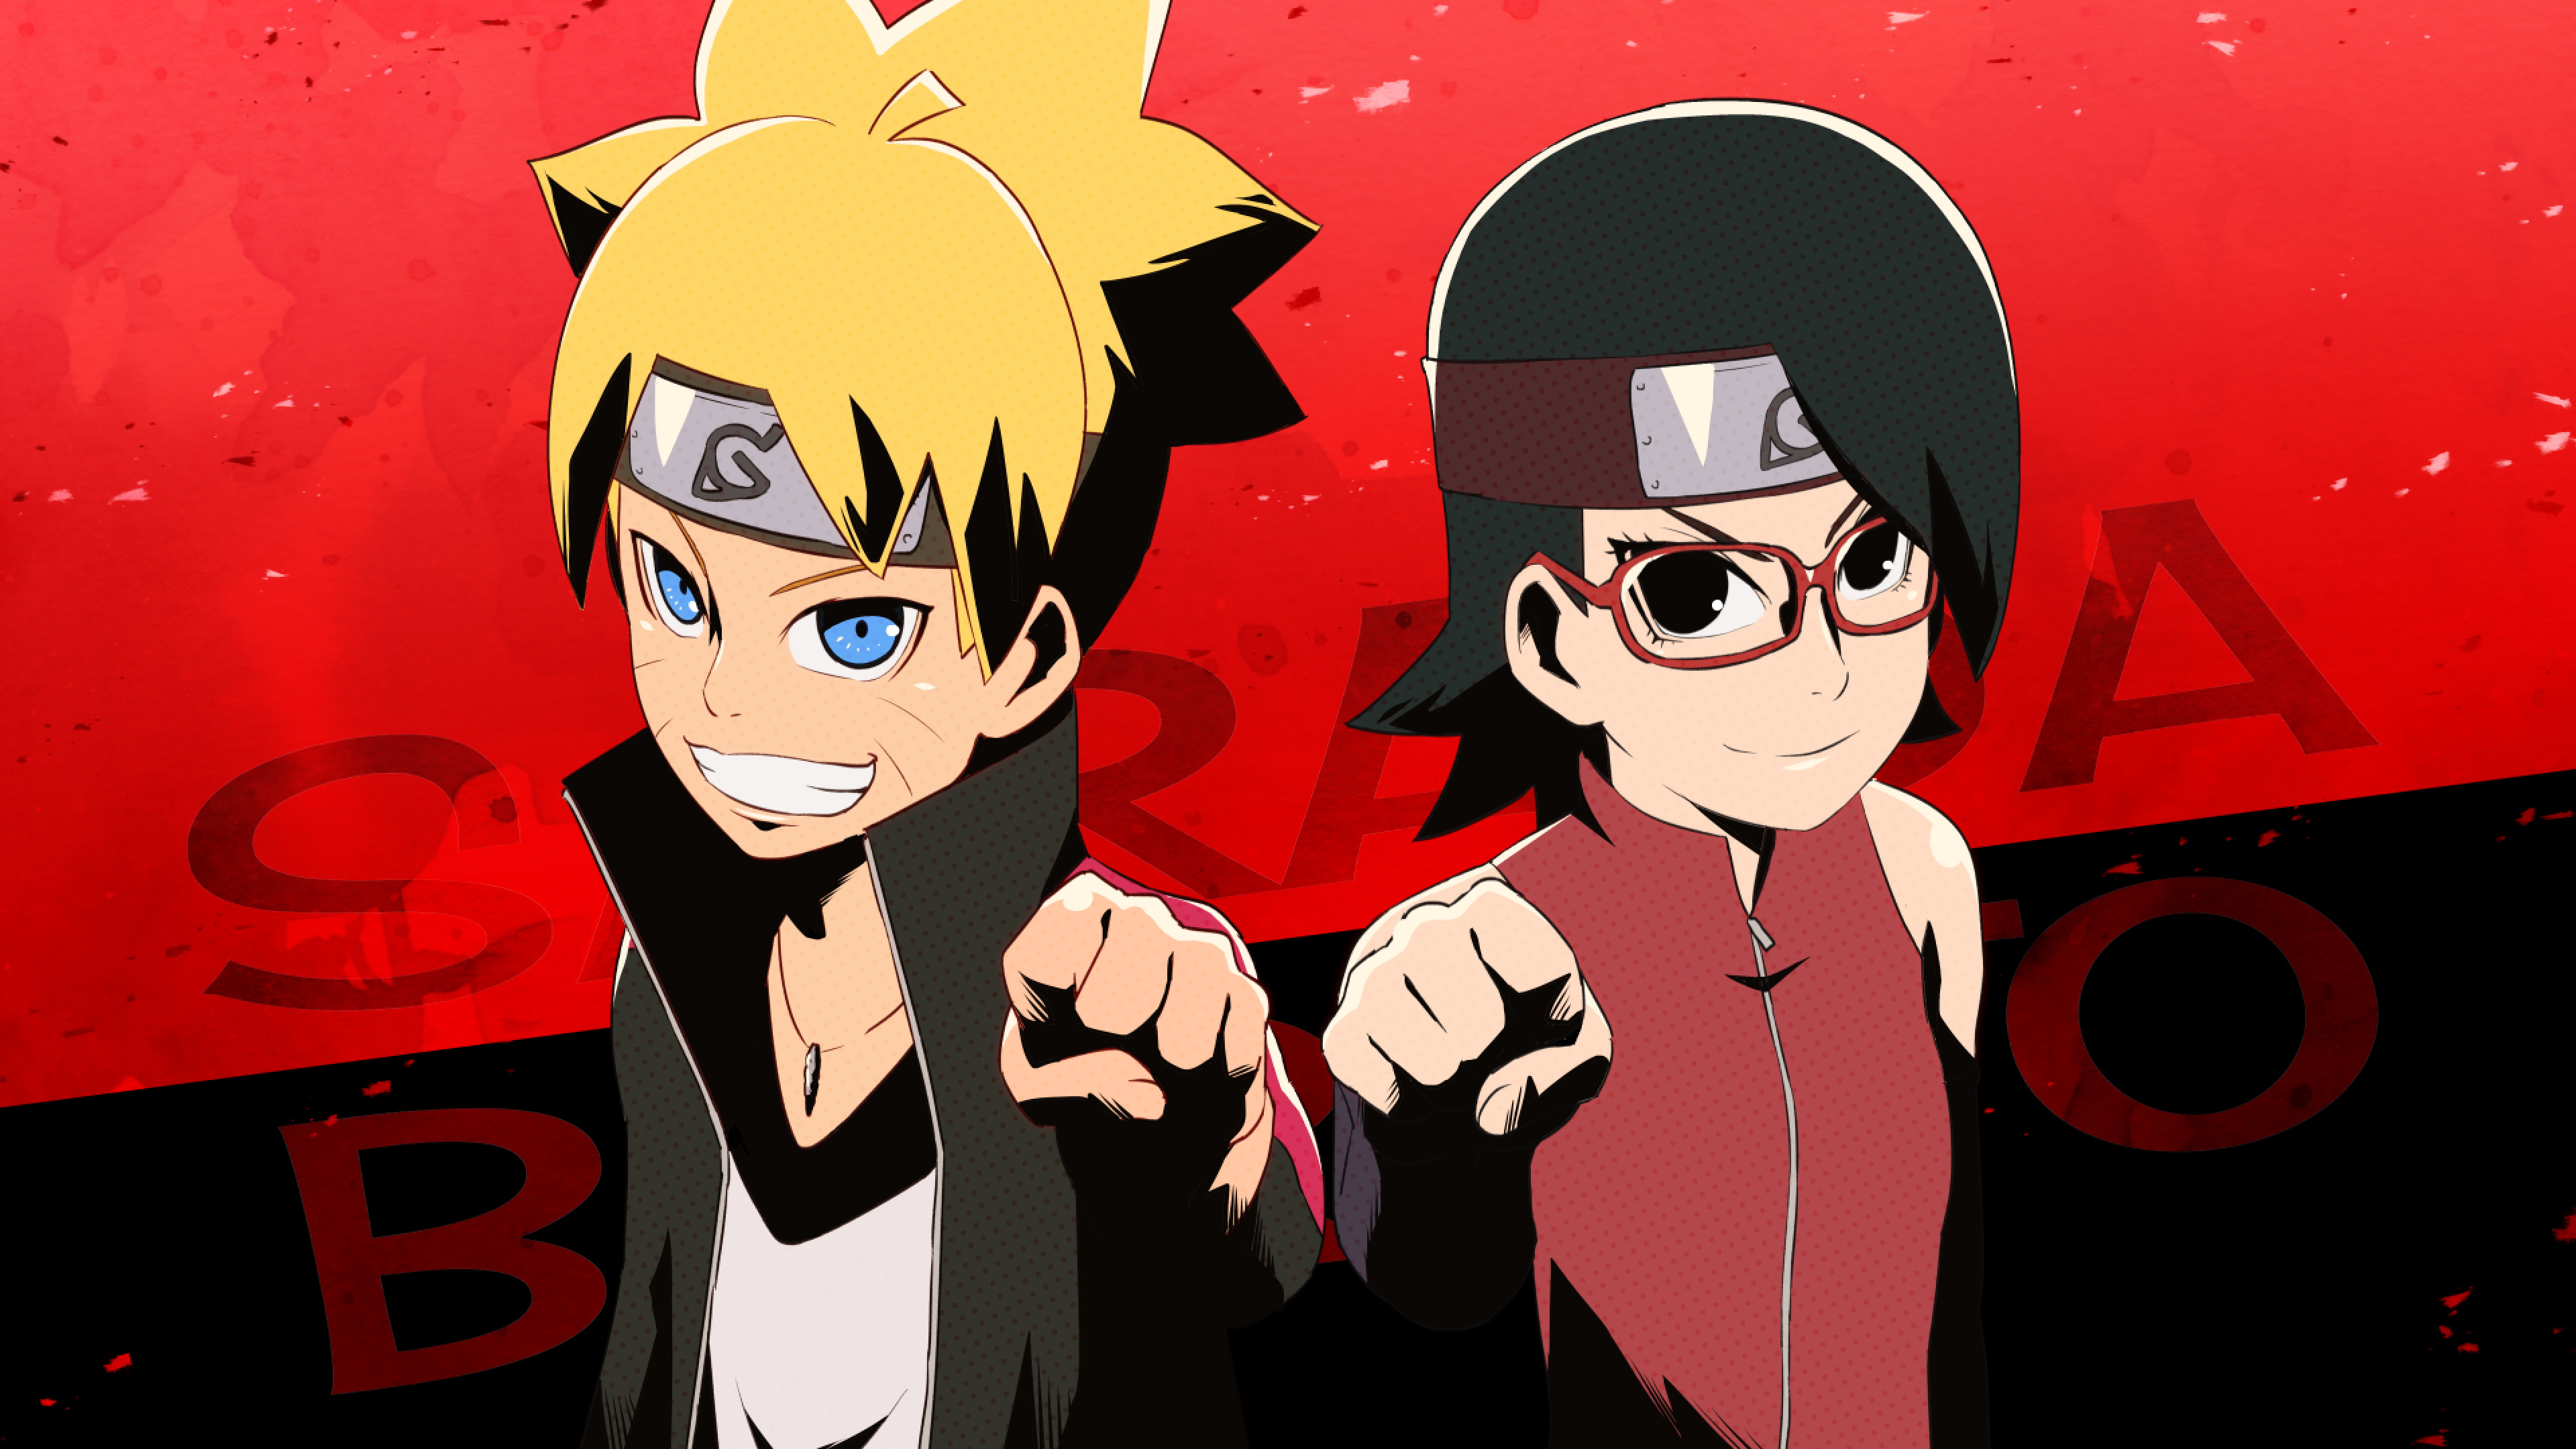 Boruto Chapter 43 Release Date, Spoilers Team 7 will Rescue Naruto as Sarada defeats Boro with Chidori Attack